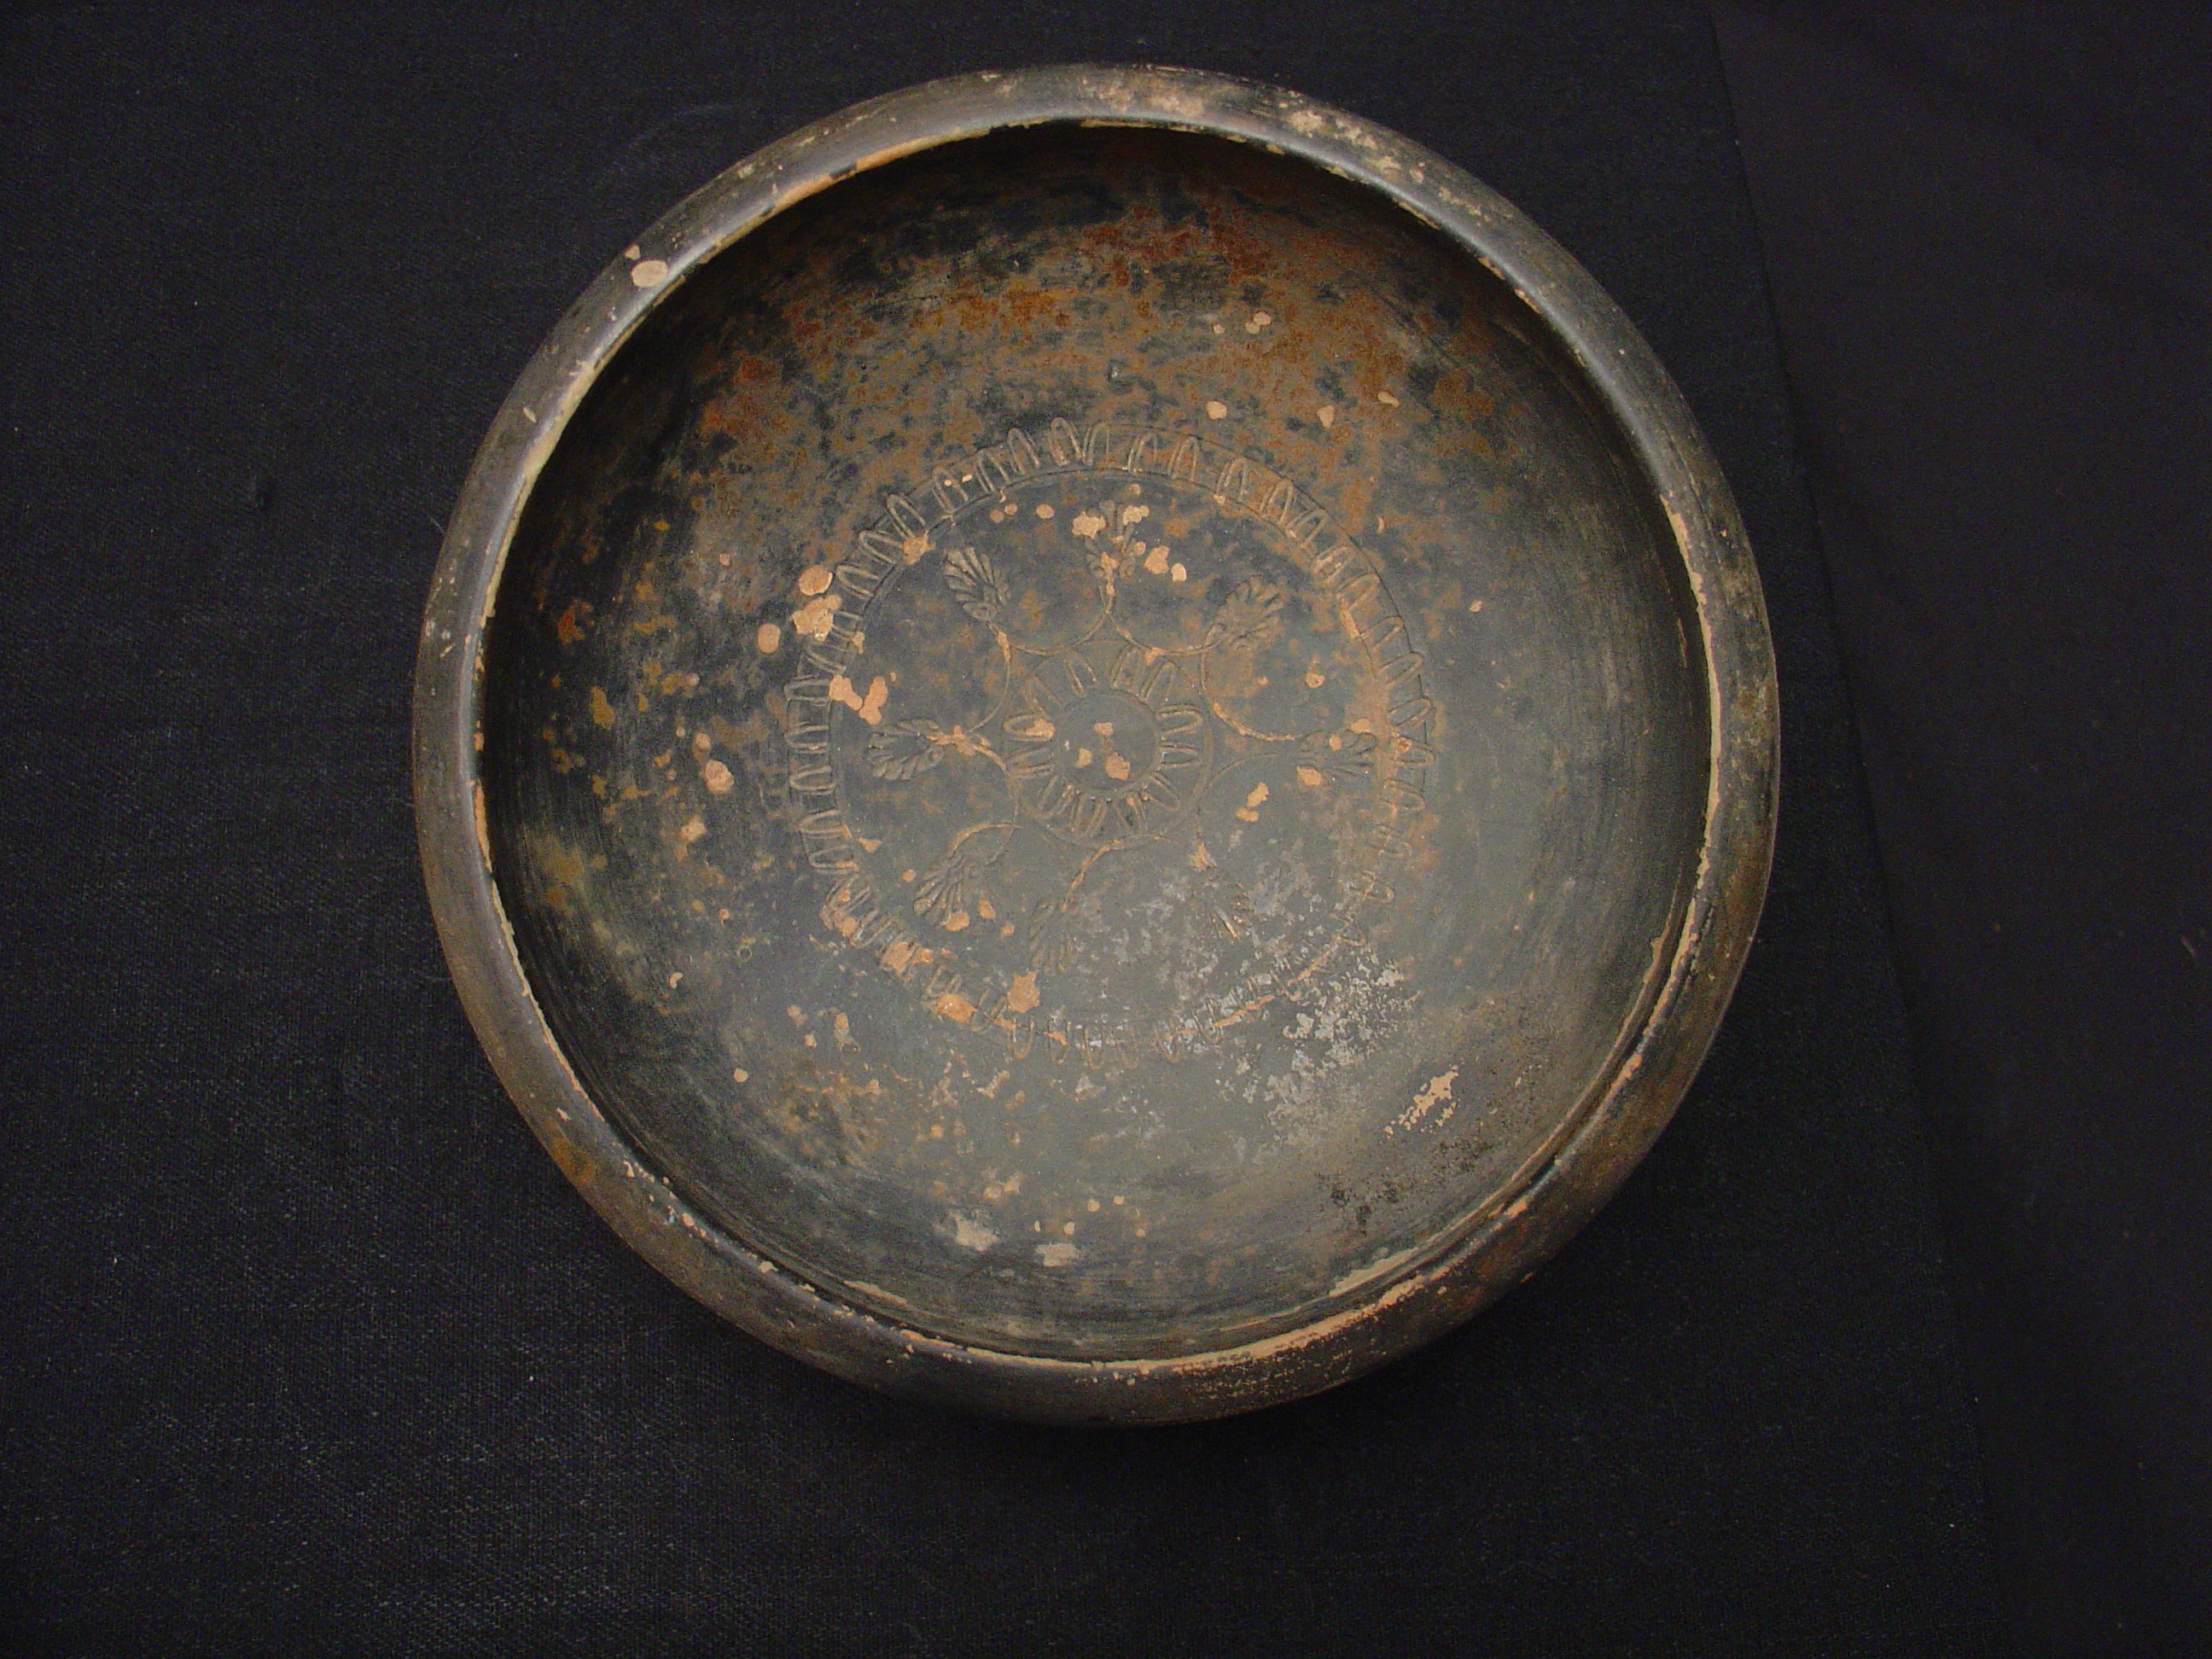 Attic Black Glaze Salt Cellar or Small Bowl , Search the Collection